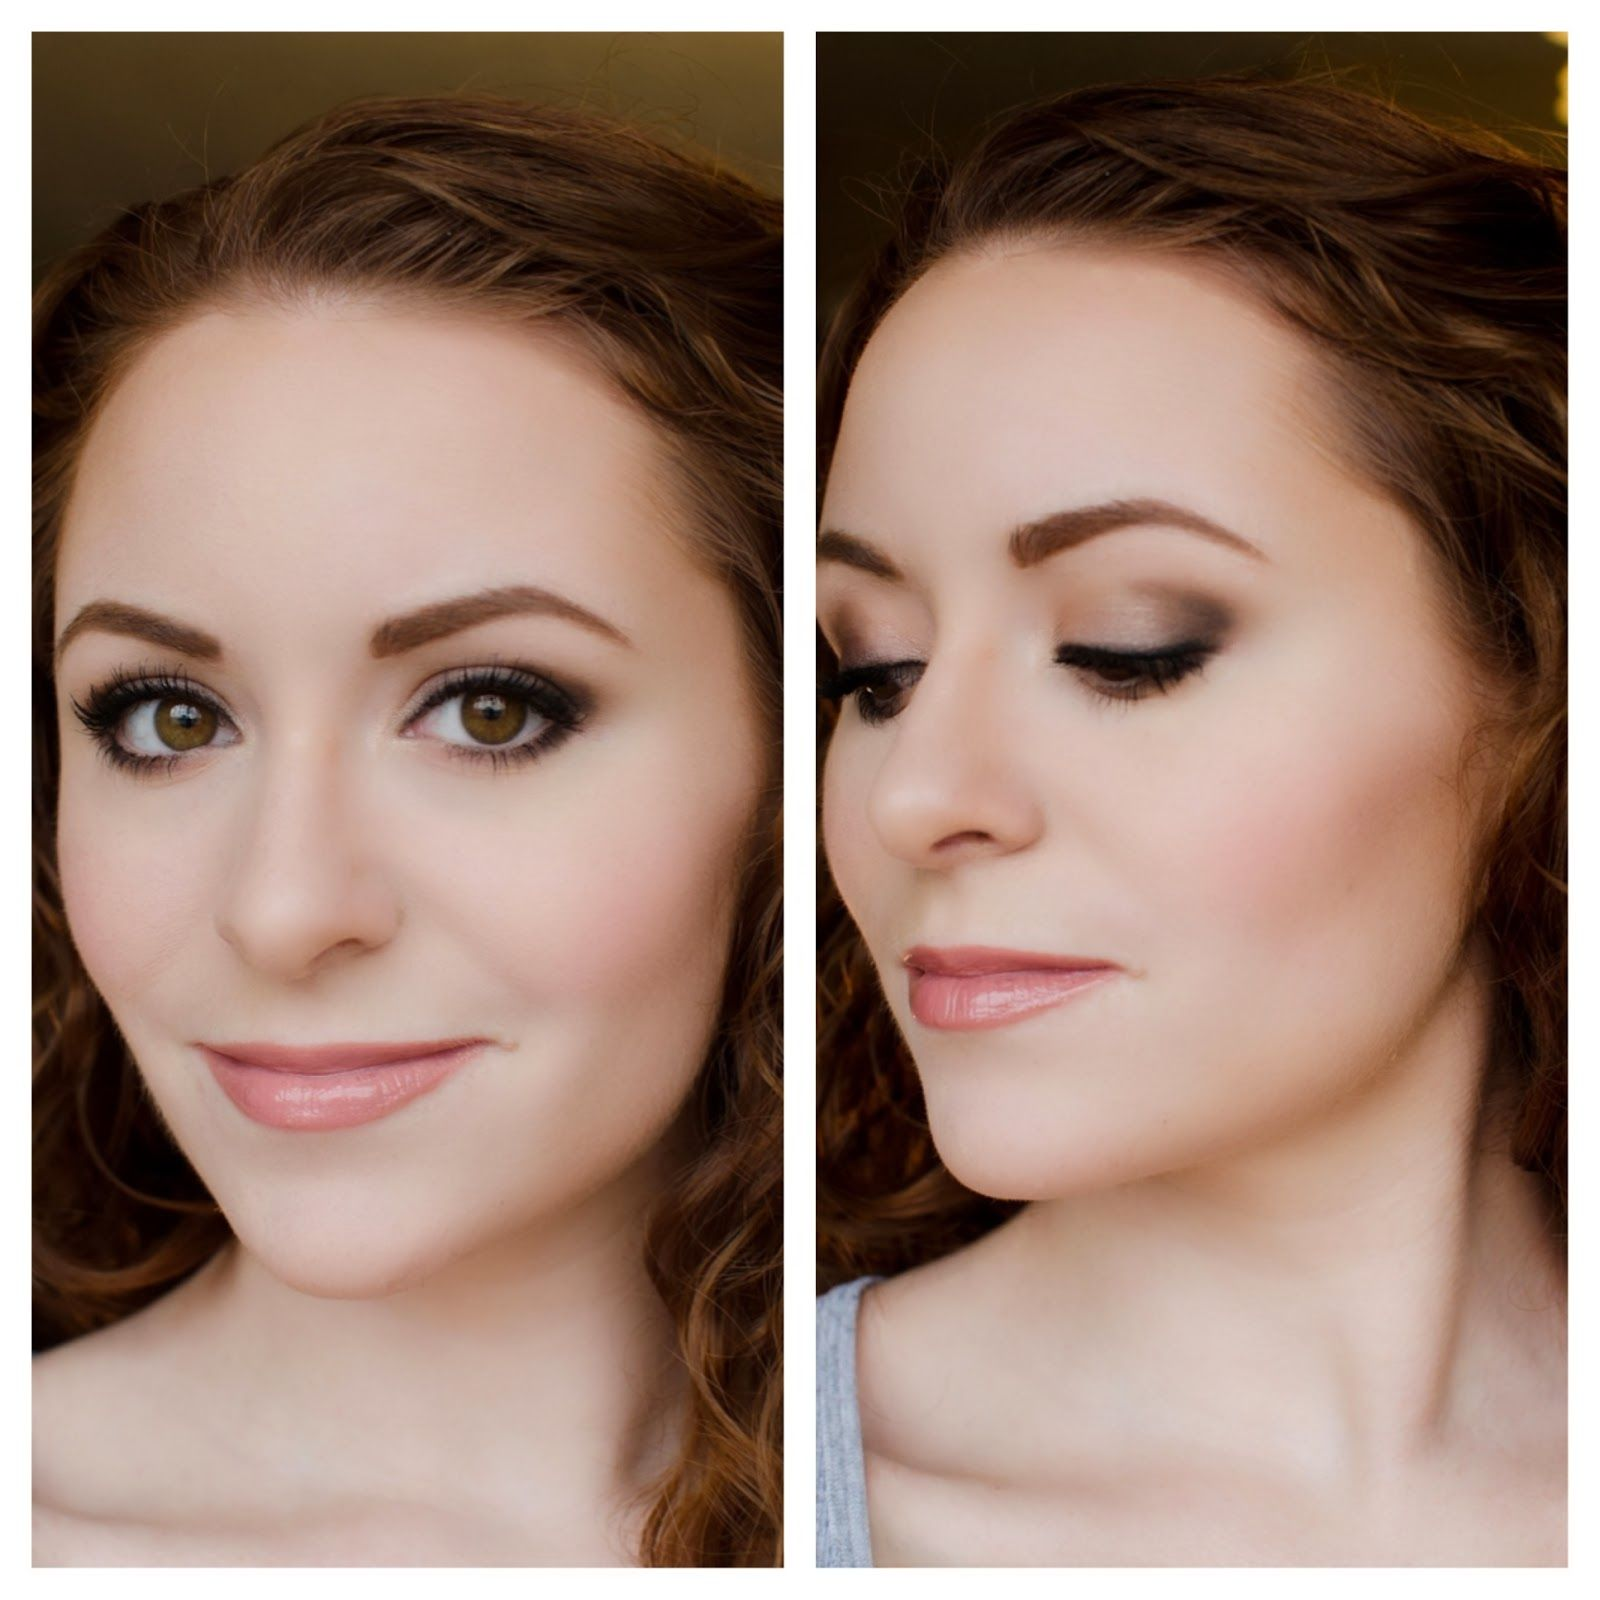 Soft romantic smoky eye look using our nudetude neutral eyeshadow makeup beauty fashion cream contour and eye look tutorial featuring thebalm nude tude palette baditri Image collections